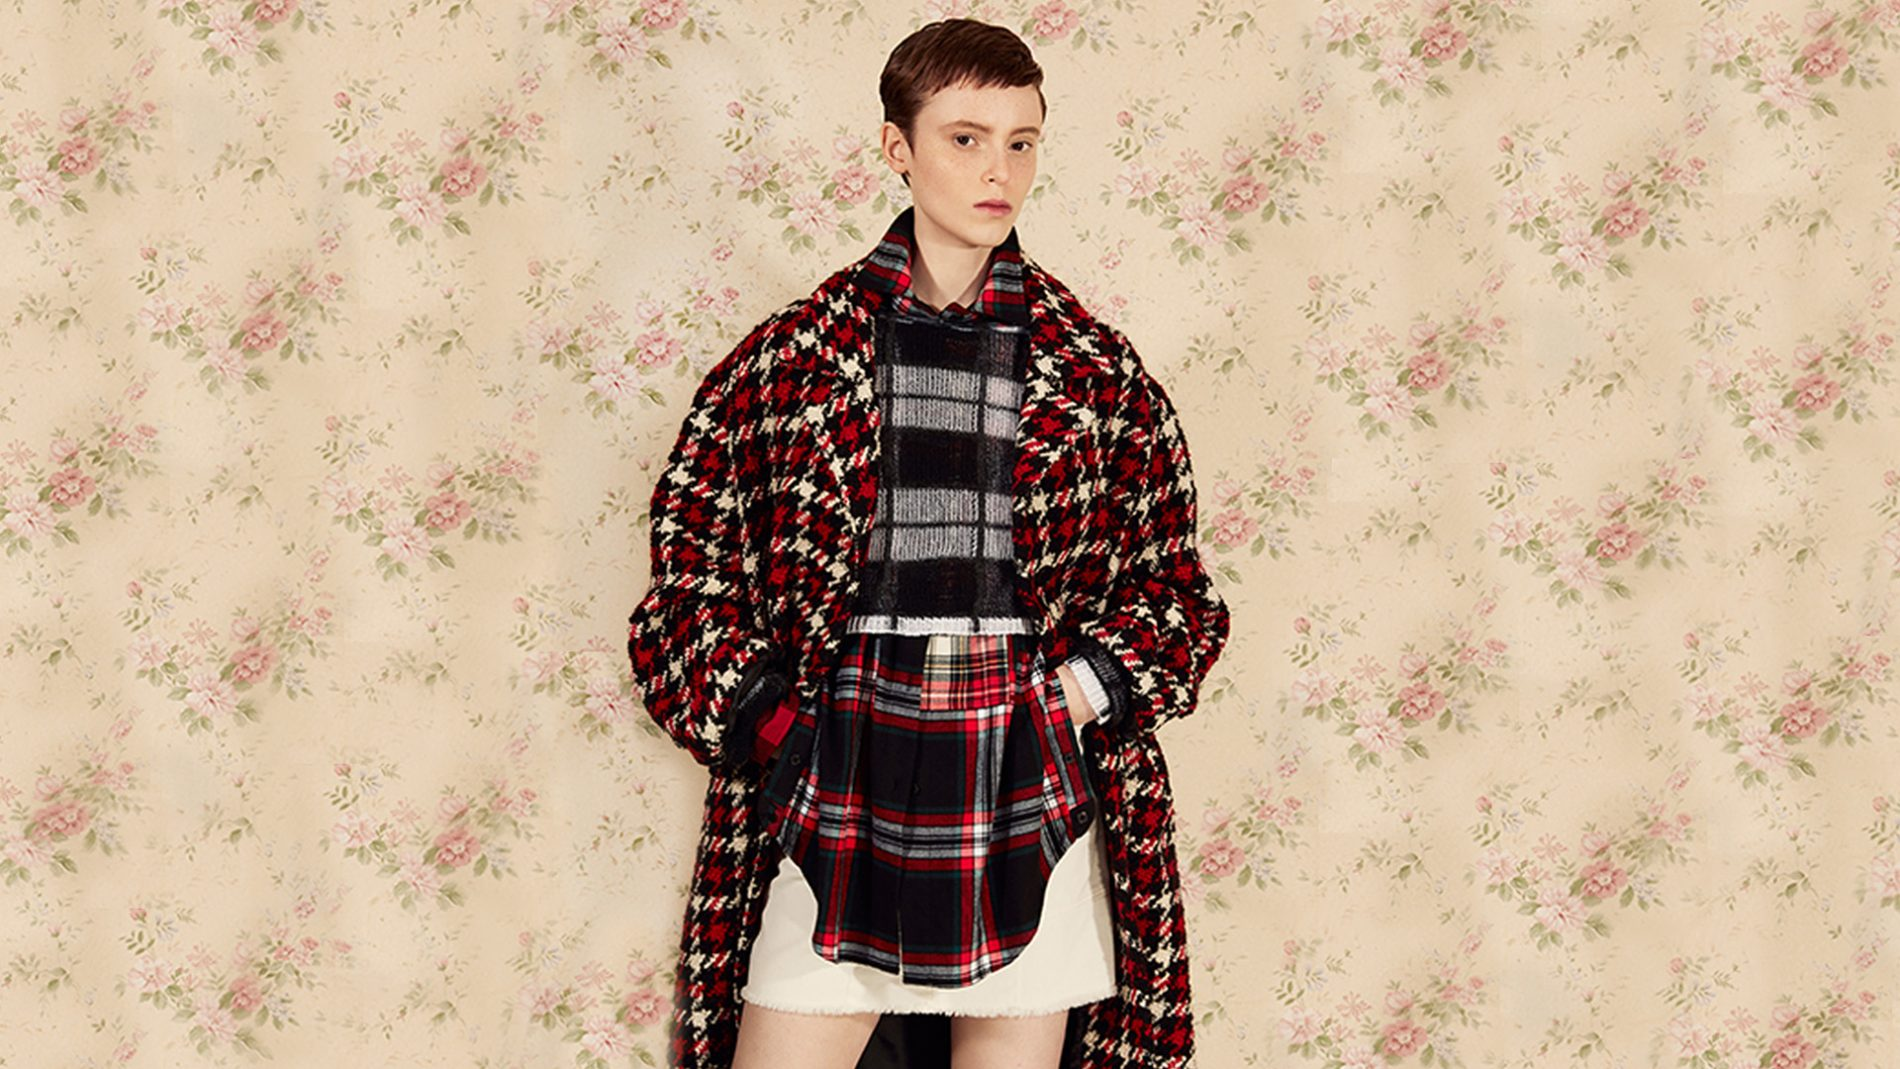 El Corte Inglés Ready-To-Wear Plaid McQ Alexander Mcqueen